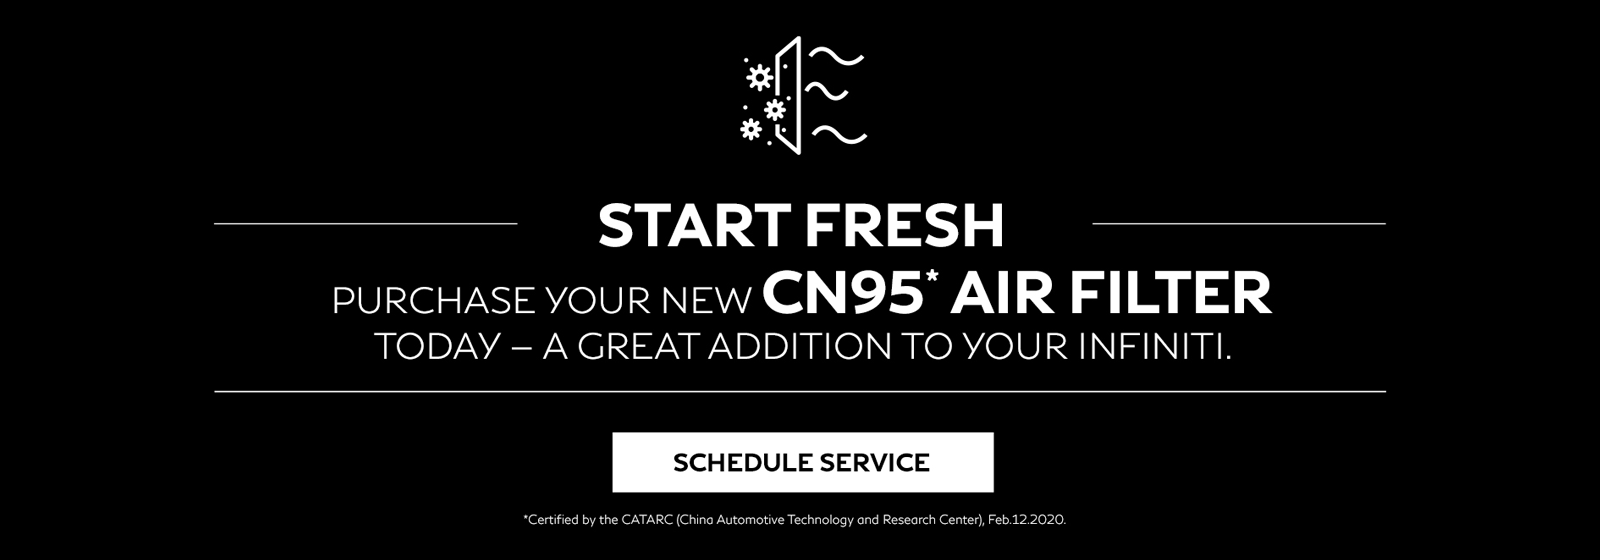 Start fresh with a CN95 Air Filter for your INFINITI. Click to schedule service.